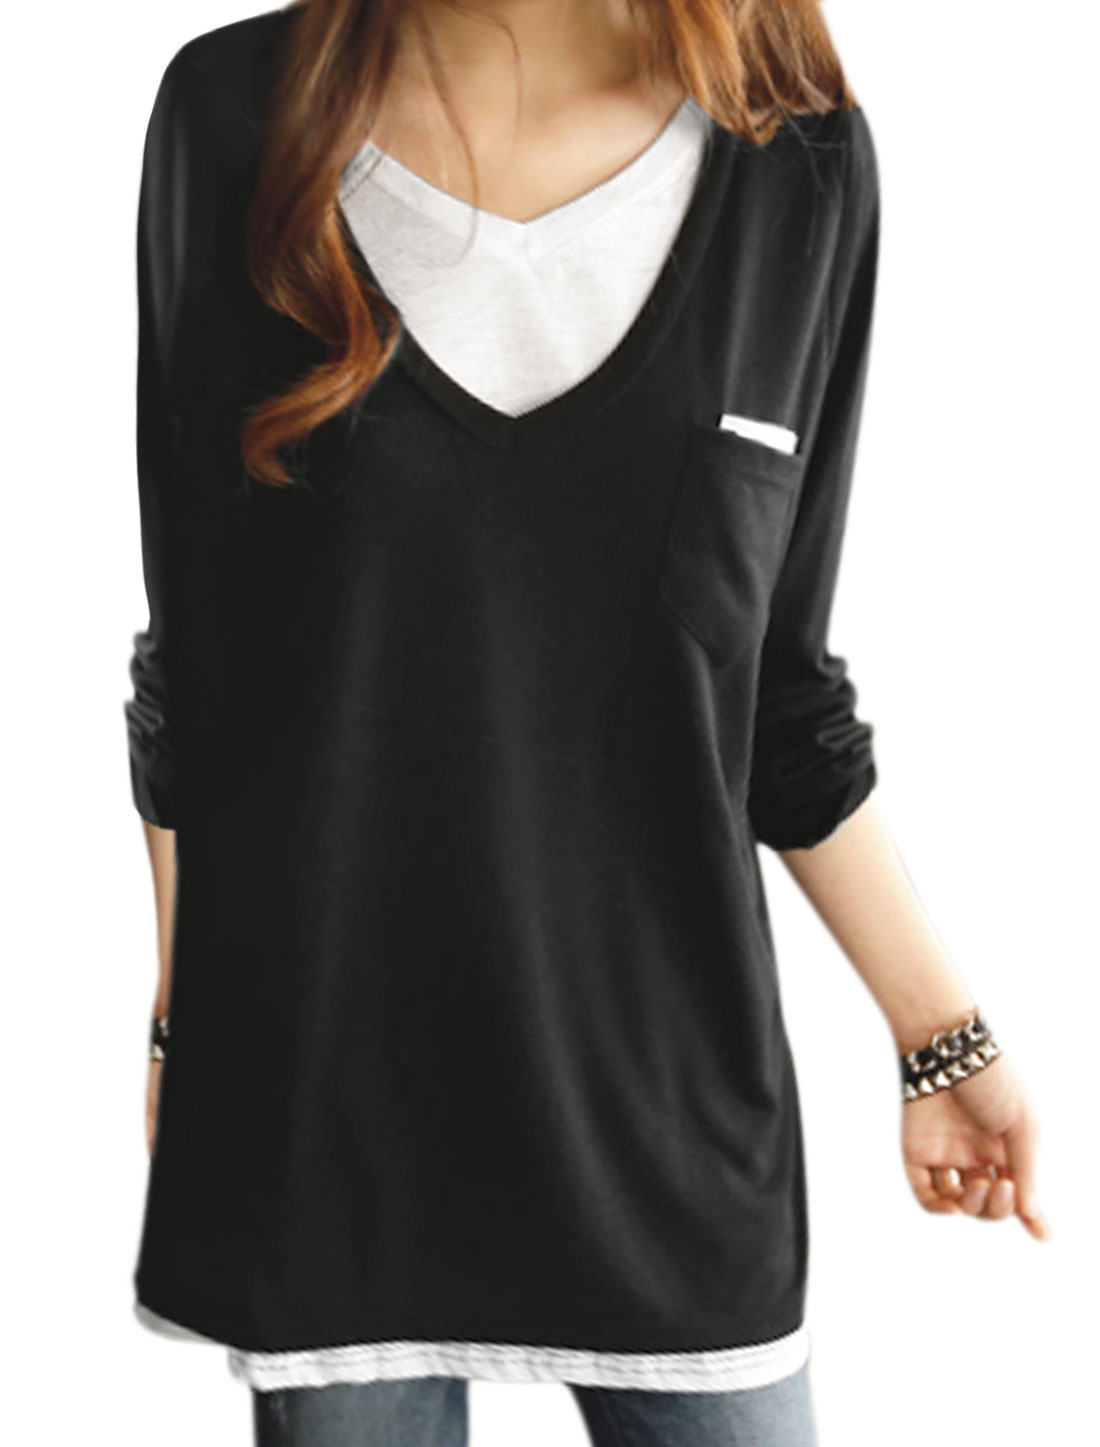 Women Long Sleeves Panel Design Contrast Color Two Pockets Tunic Top Black XS